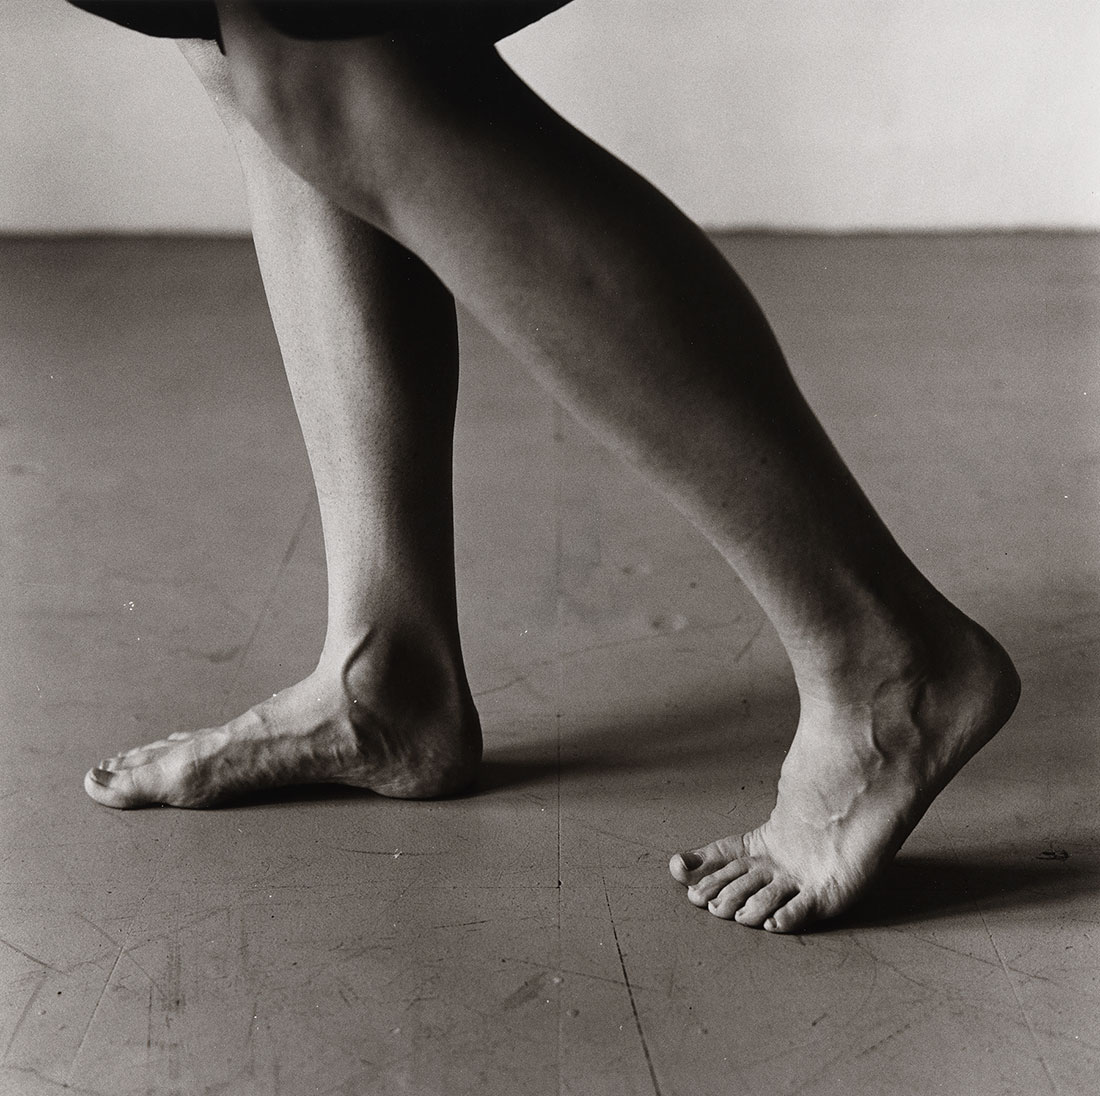 Dana Reitz's Legs, Walking<br />1979<br />Peter Hujar<br />Tirage gélatino-argentique, Peter Hujar Archive LLC<br />© Peter Hujar Archive, LLC, courtesy Pace/MacGill Gallery, New York and Fraenkel Gallery, San Francisco